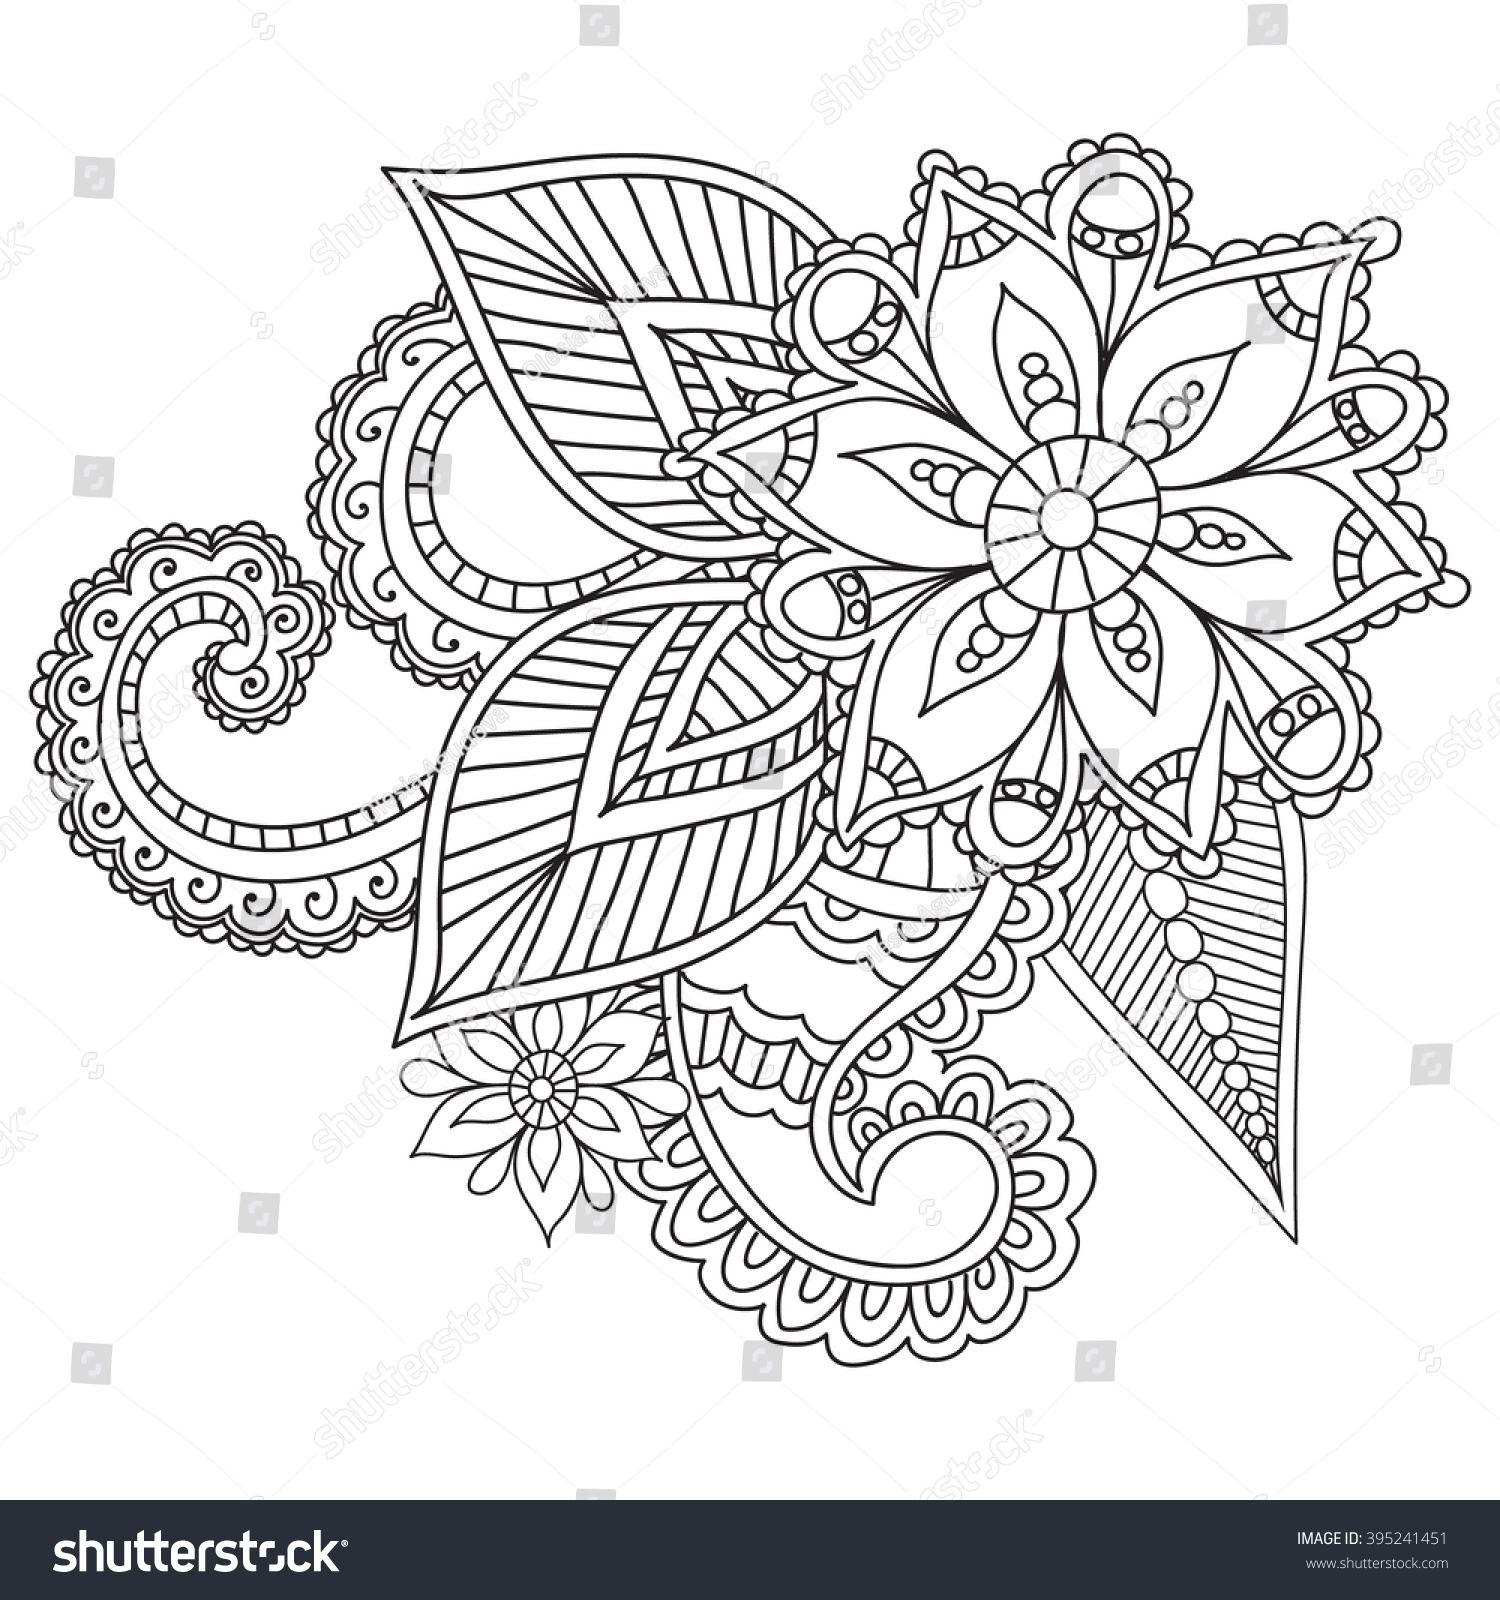 Henna Paisley Flower Coloring Page | Patrones Para Bordar Embroidery ...